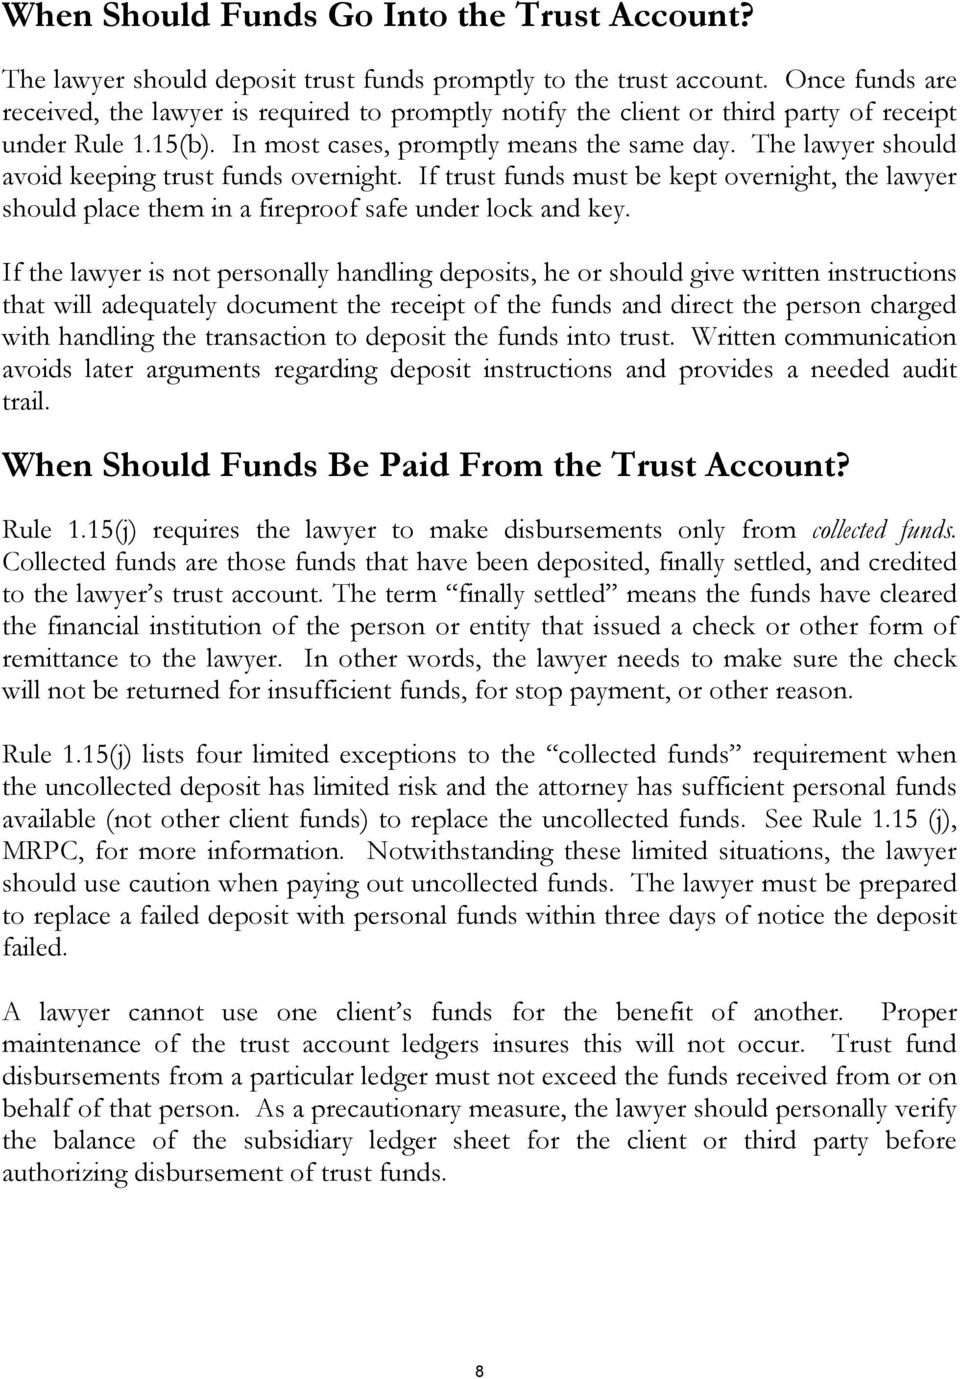 The lawyer should avoid keeping trust funds overnight. If trust funds must be kept overnight, the lawyer should place them in a fireproof safe under lock and key.